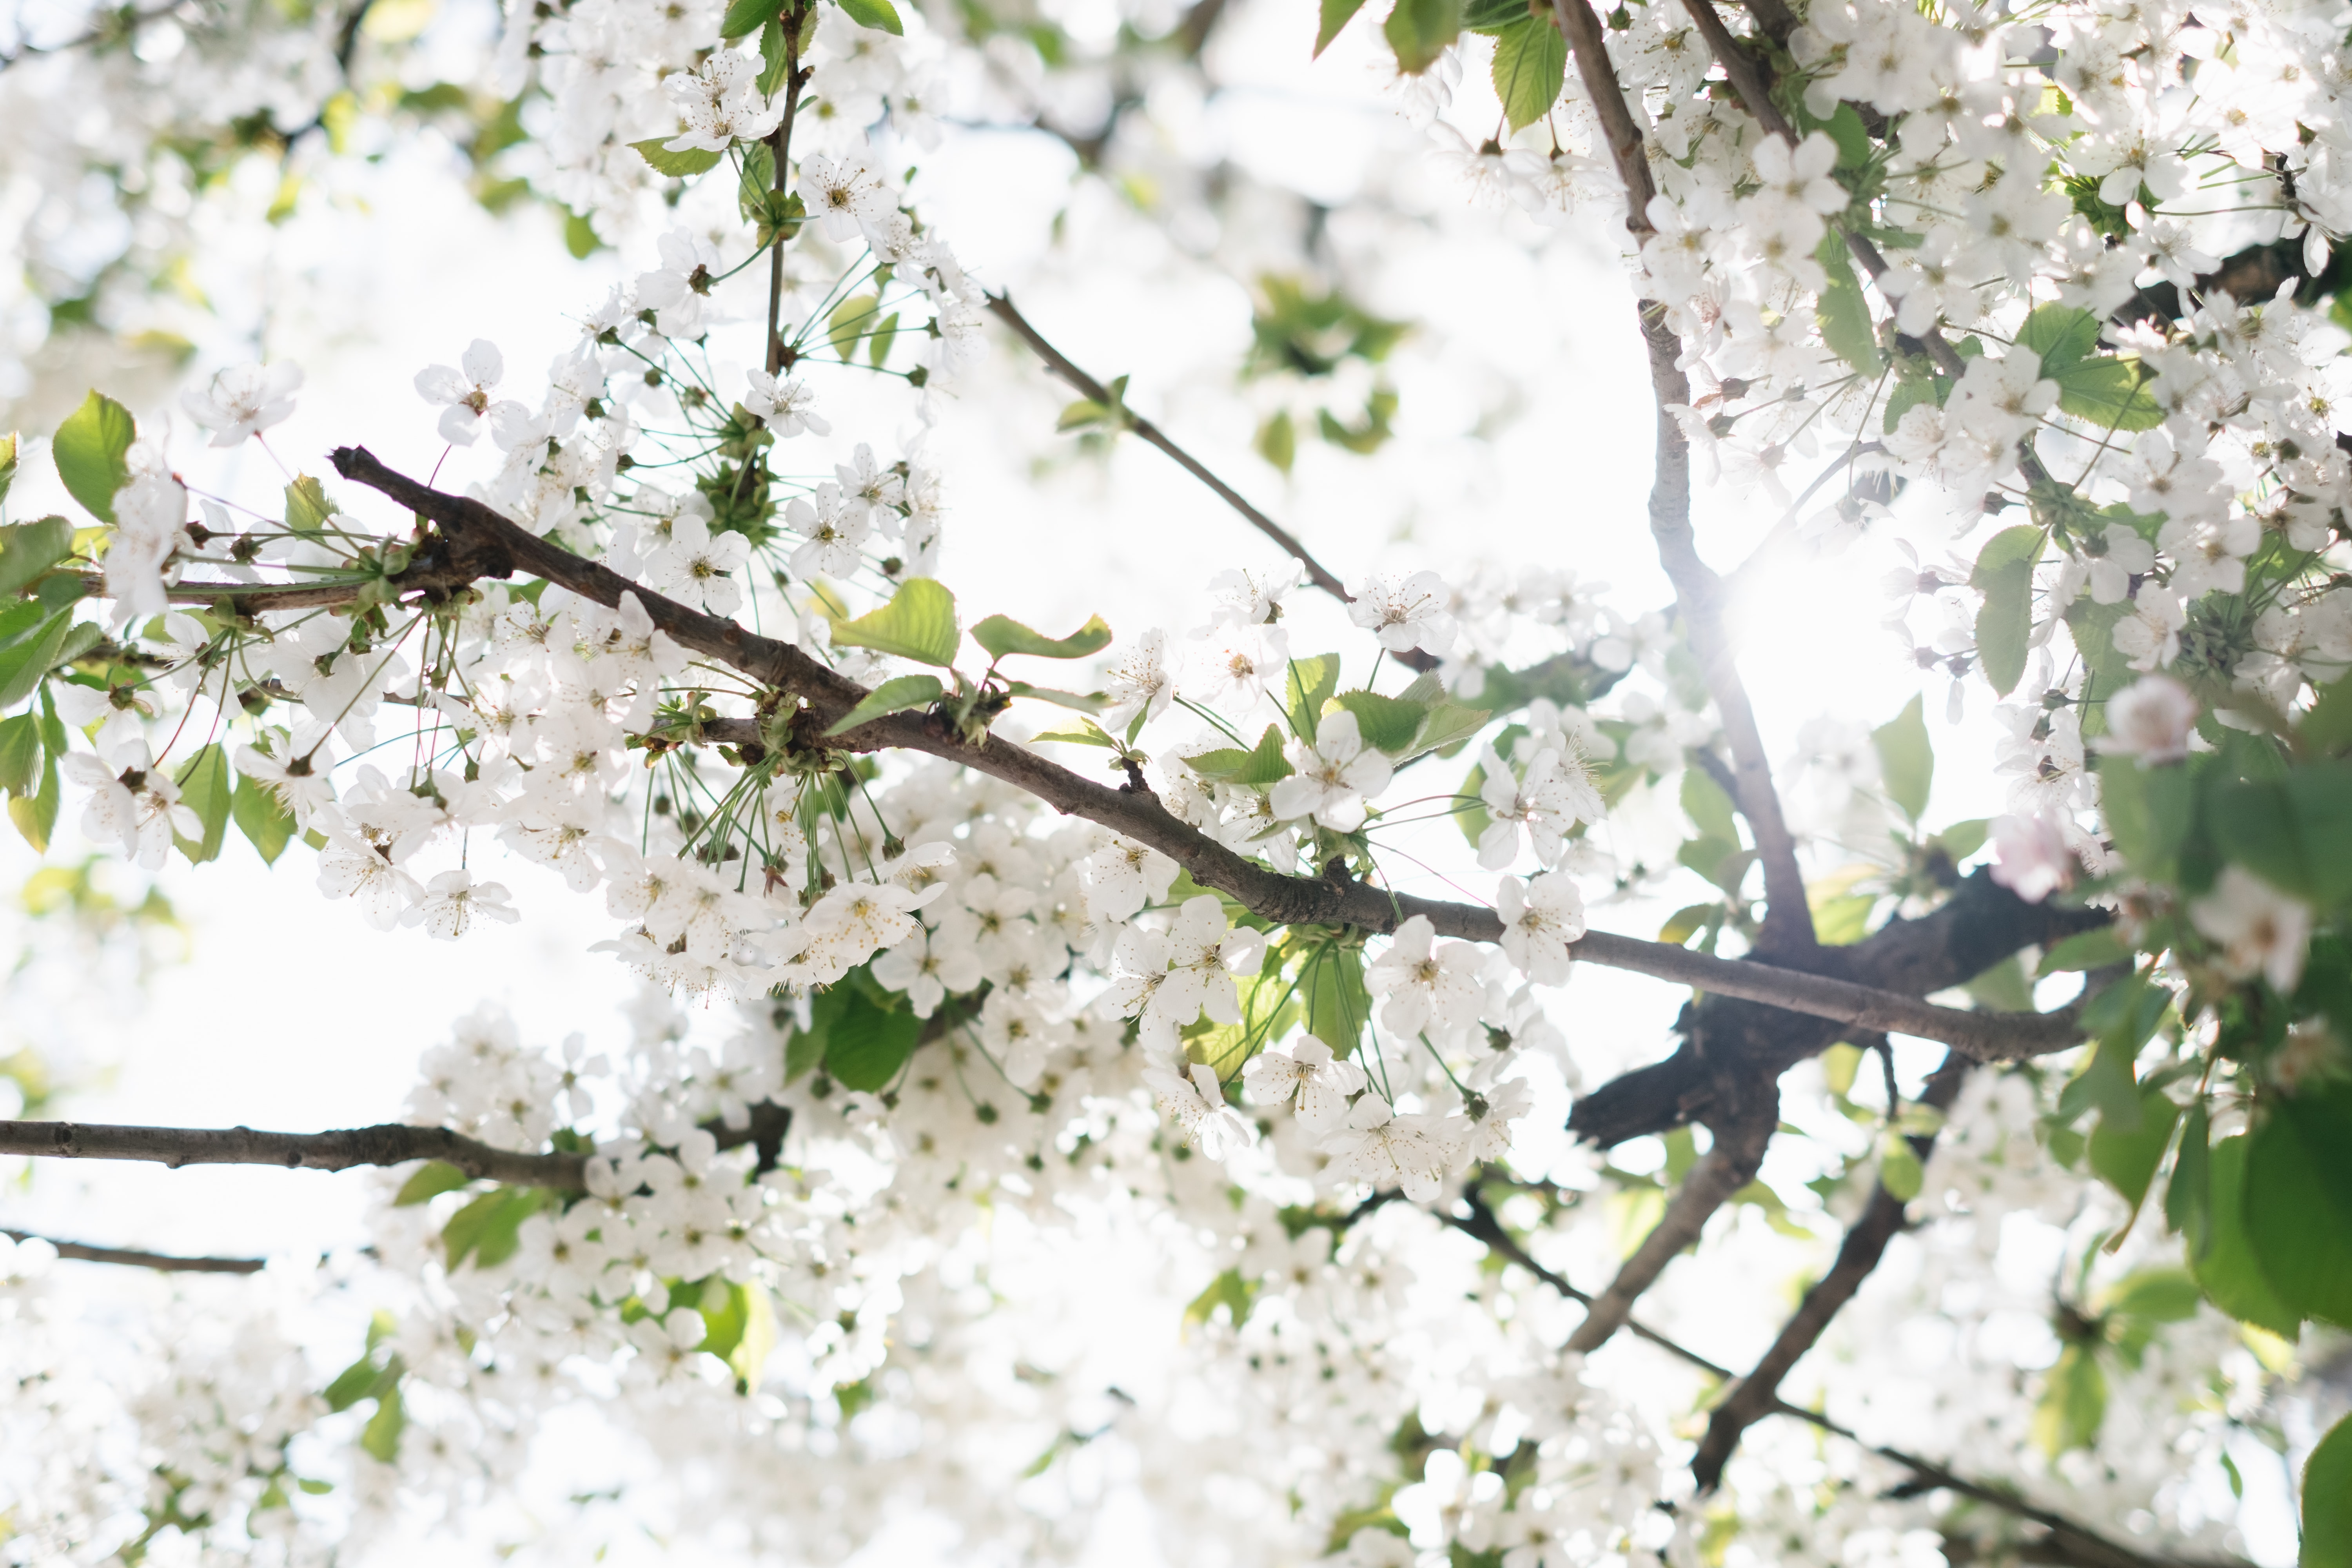 low angle photo of white blossom flowers